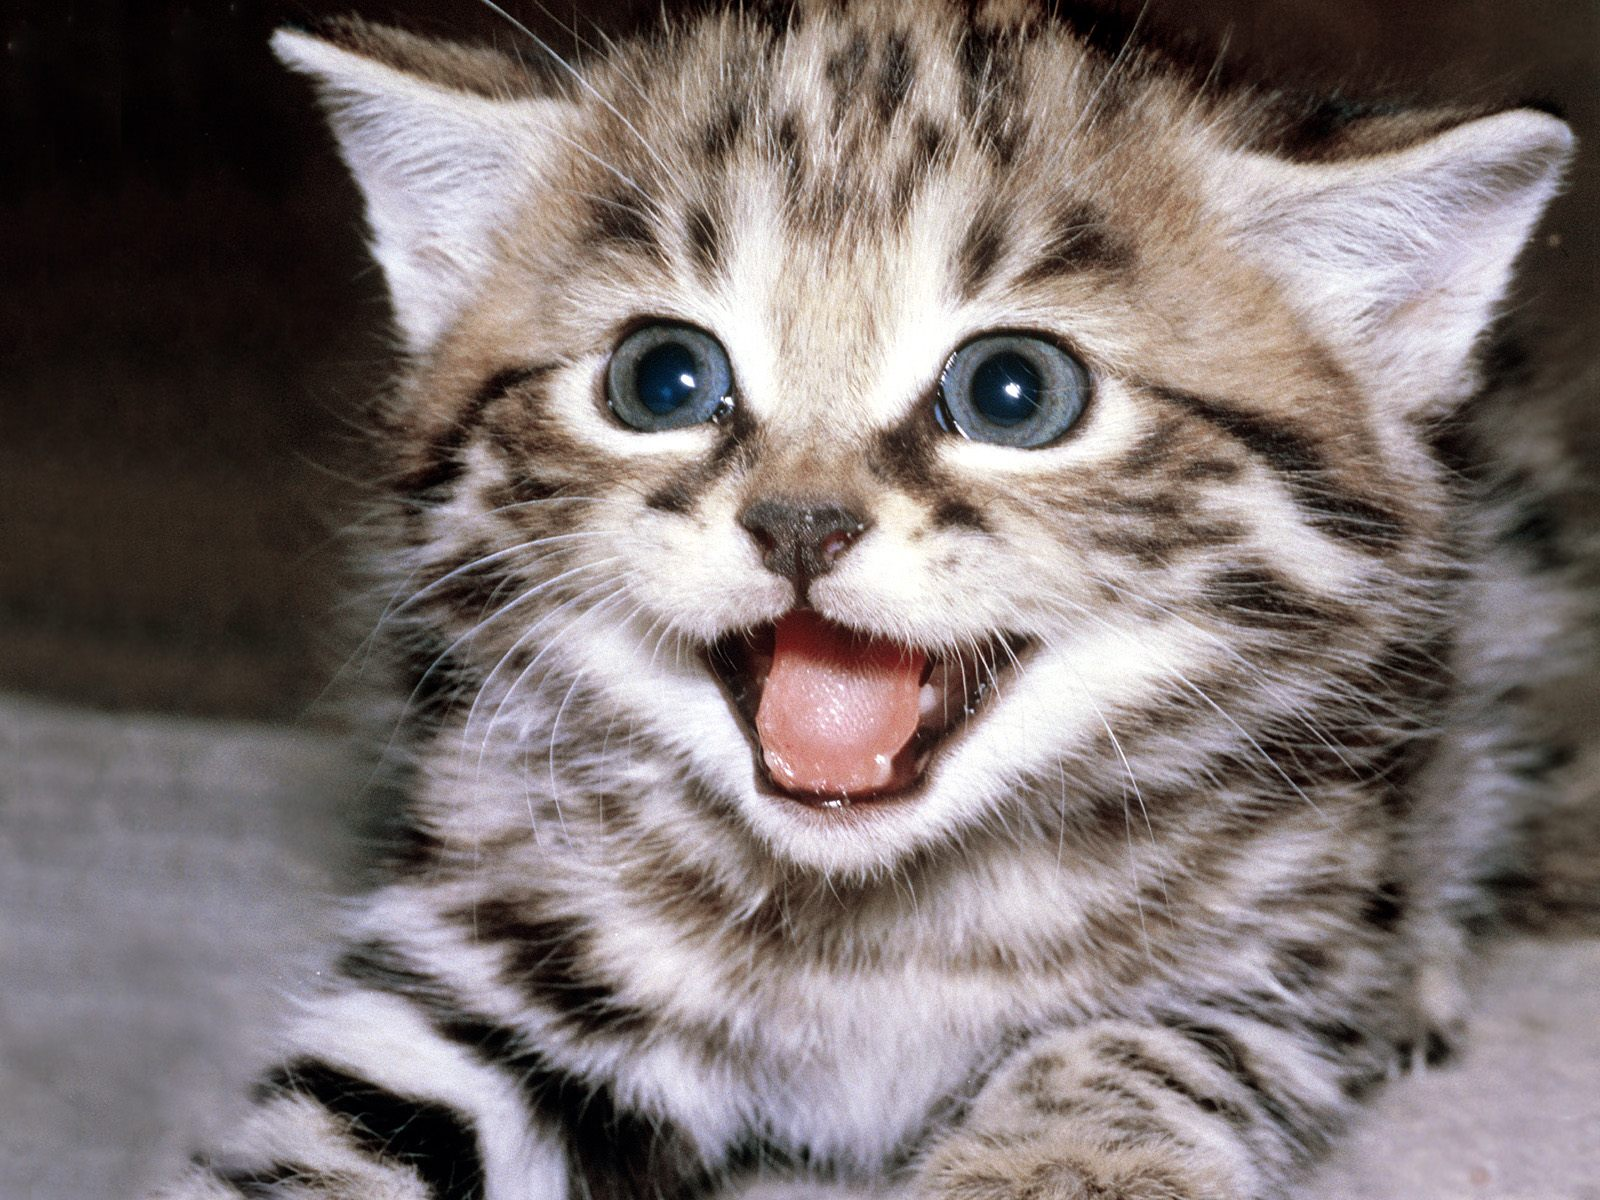 TipTop 3D HD Wallpapers Collection Beautiful Cats Wallpapers 1600x1200